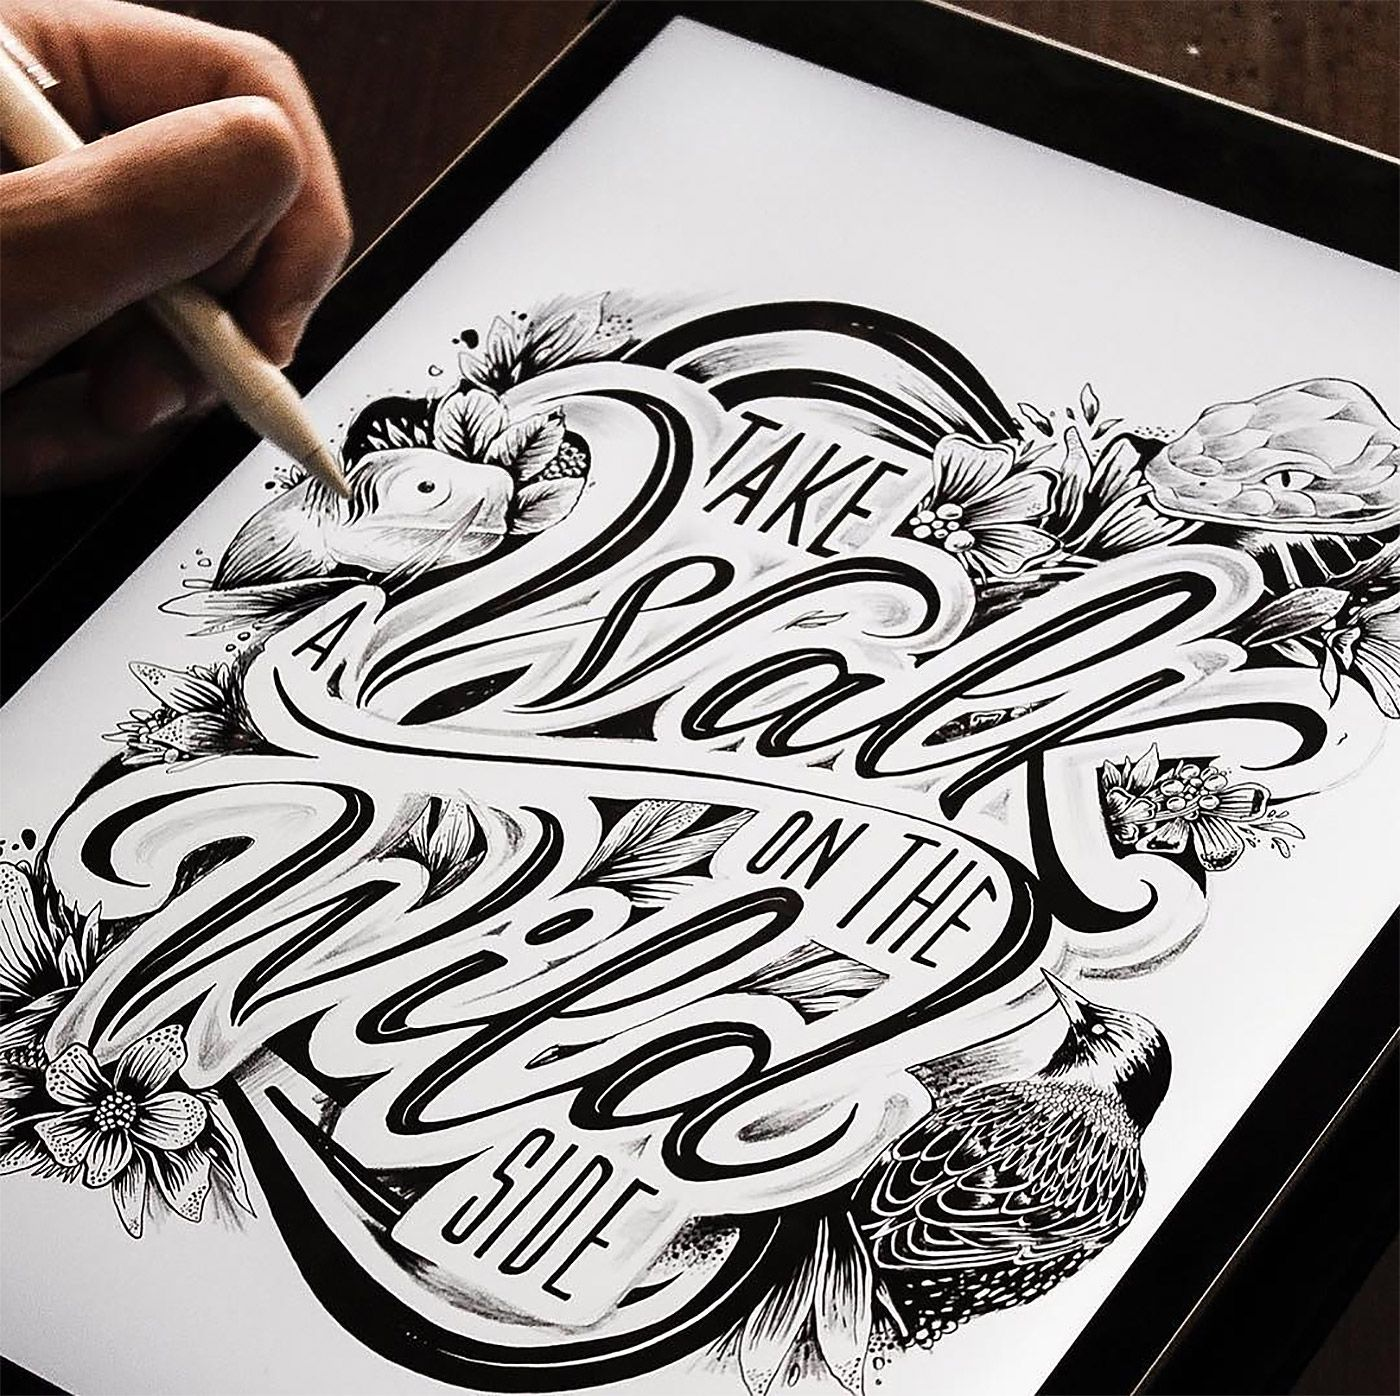 Hand-Lettering By Emanuele Ricci